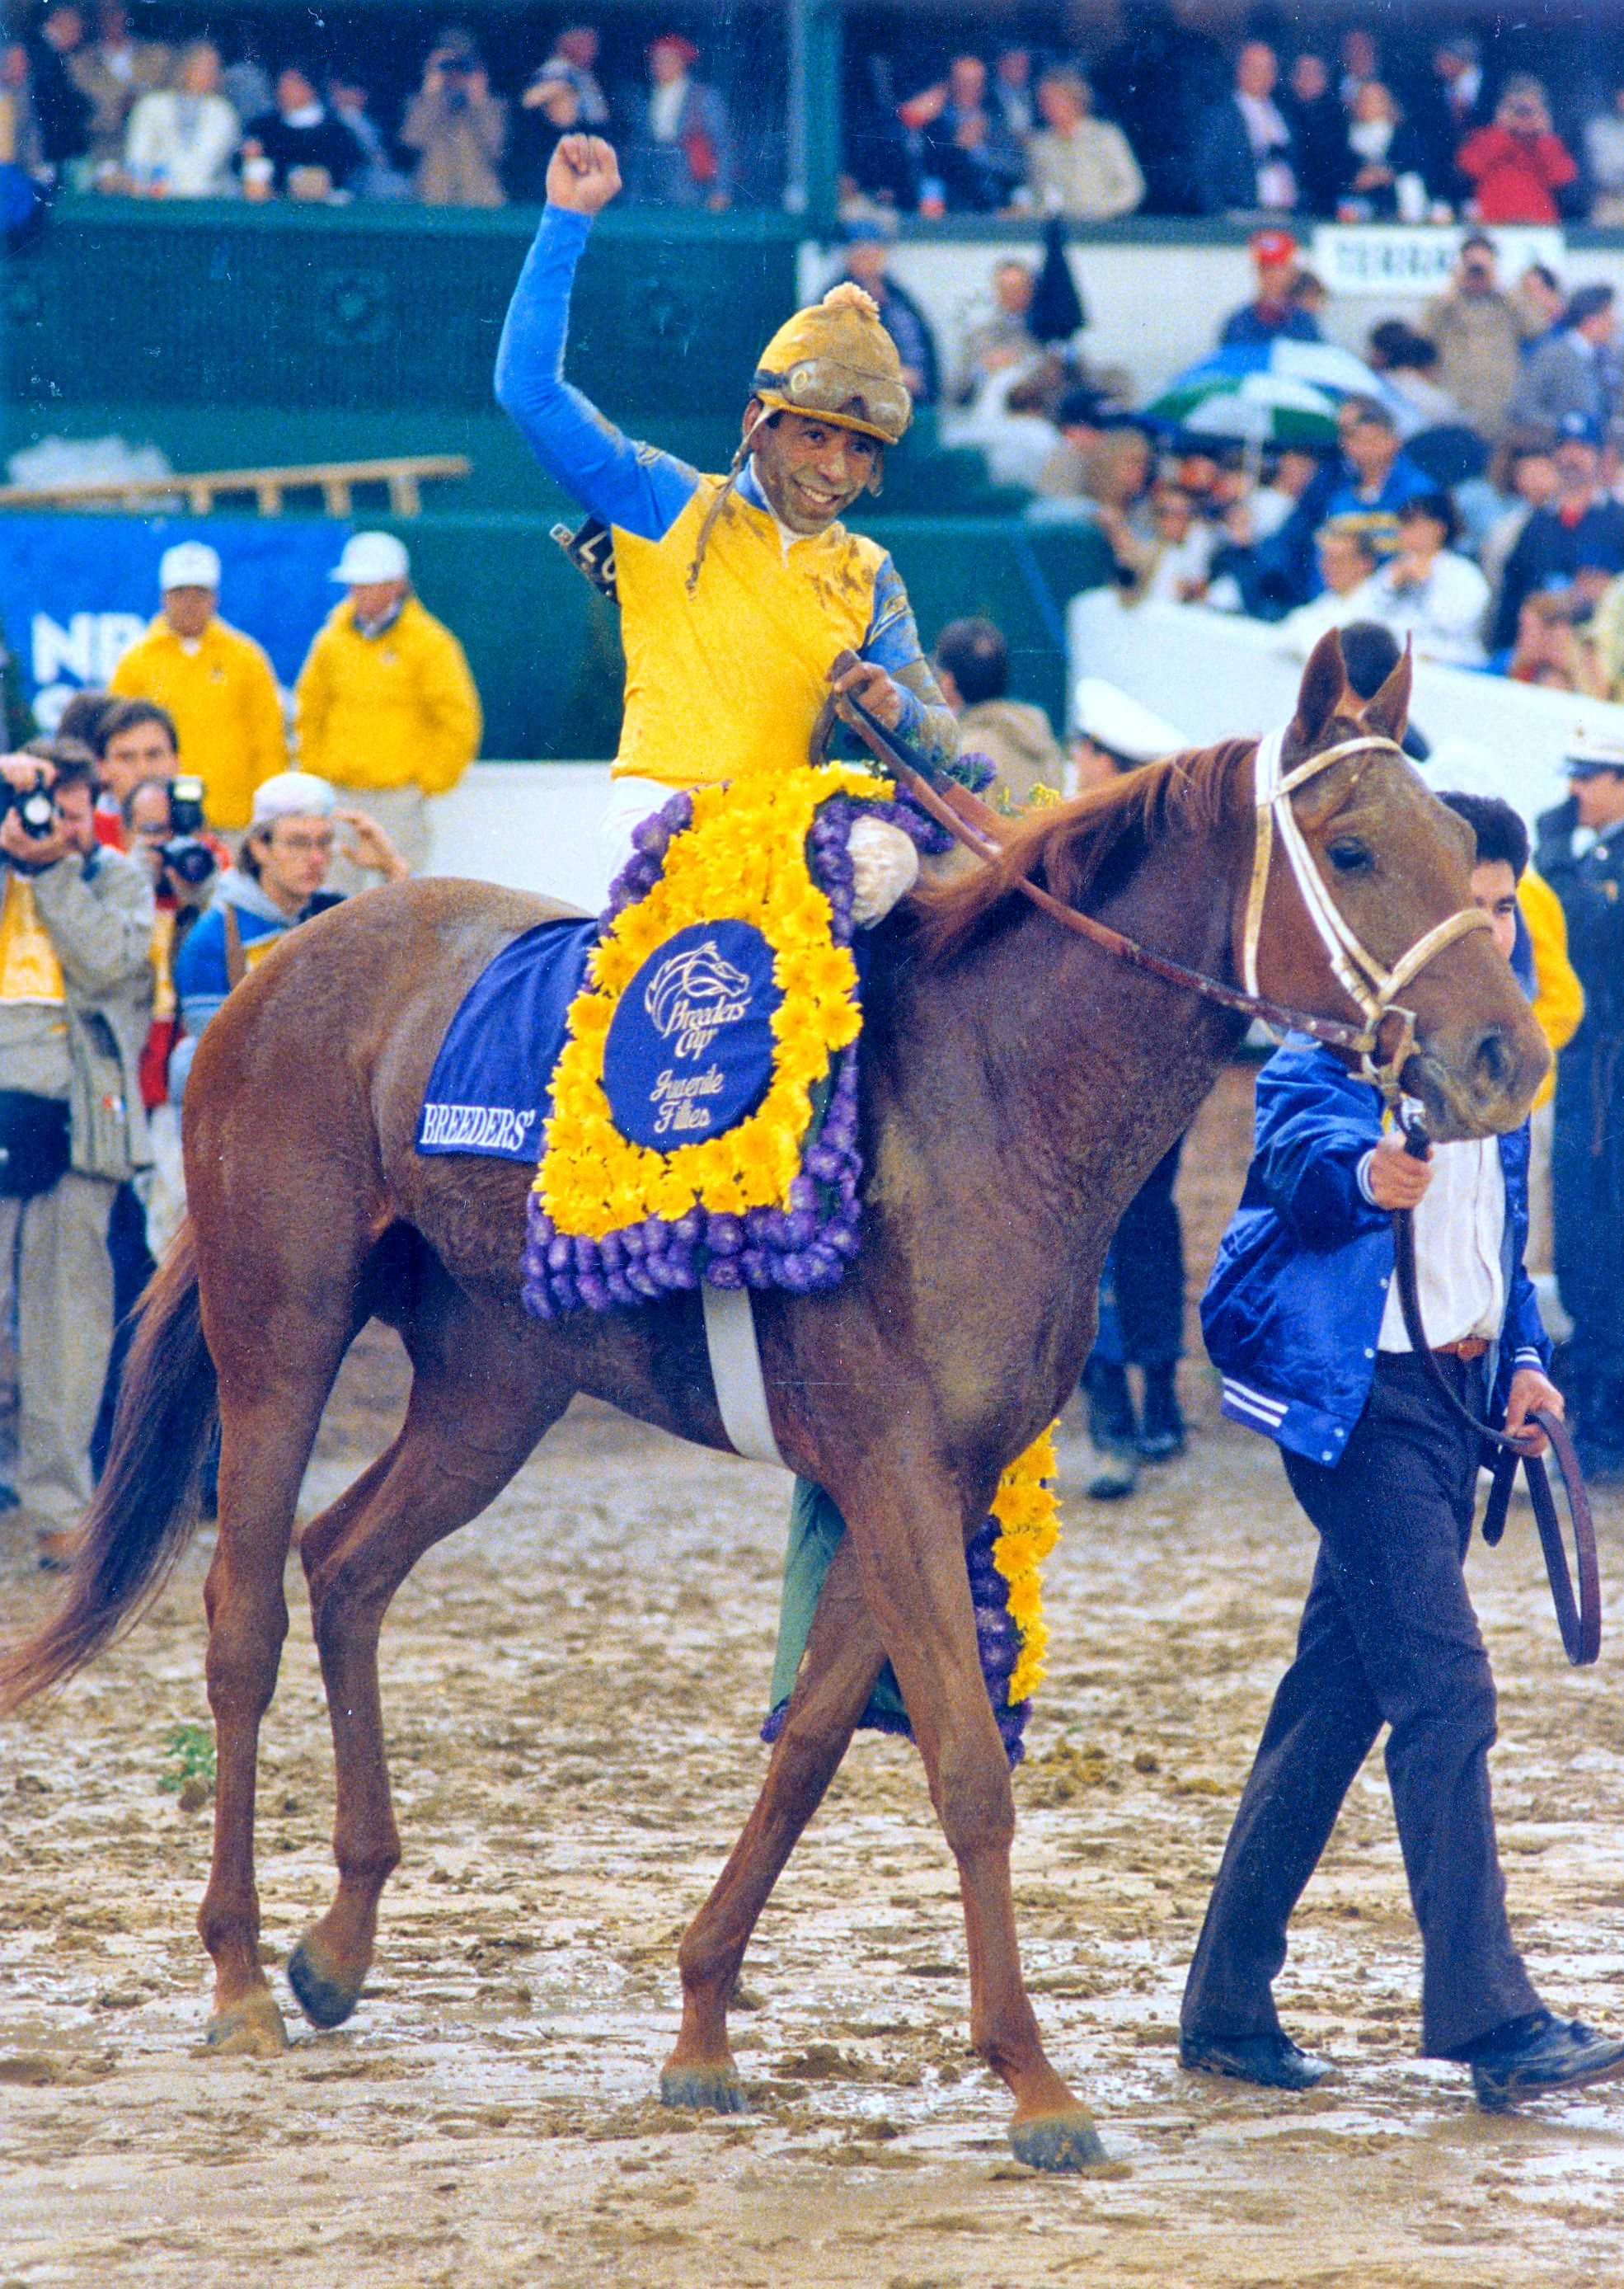 Angel Cordero, Jr. celebrates winning the 1988 Breeders' Cup Juvenile Fillies with Open Mind (The BloodHorse)